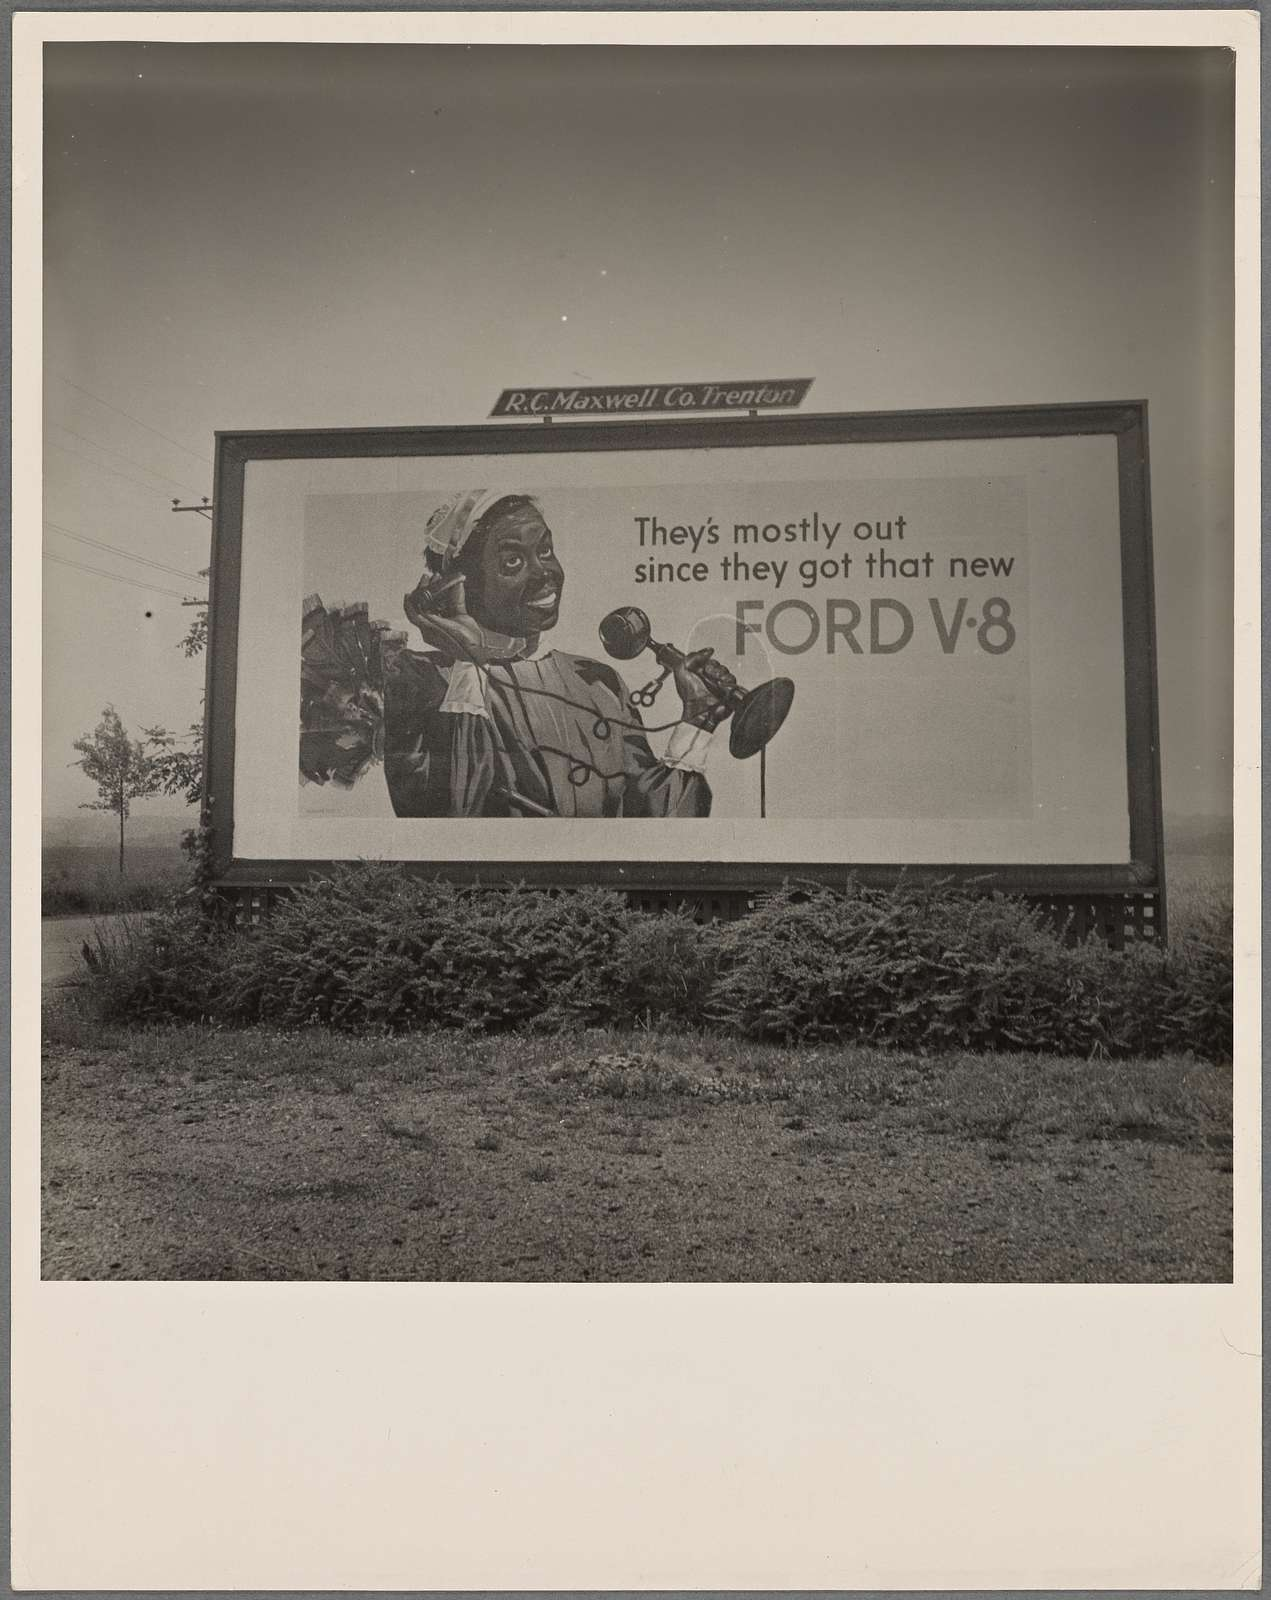 Road sign. Ford Nat'l advertising campaign. A note on social trends